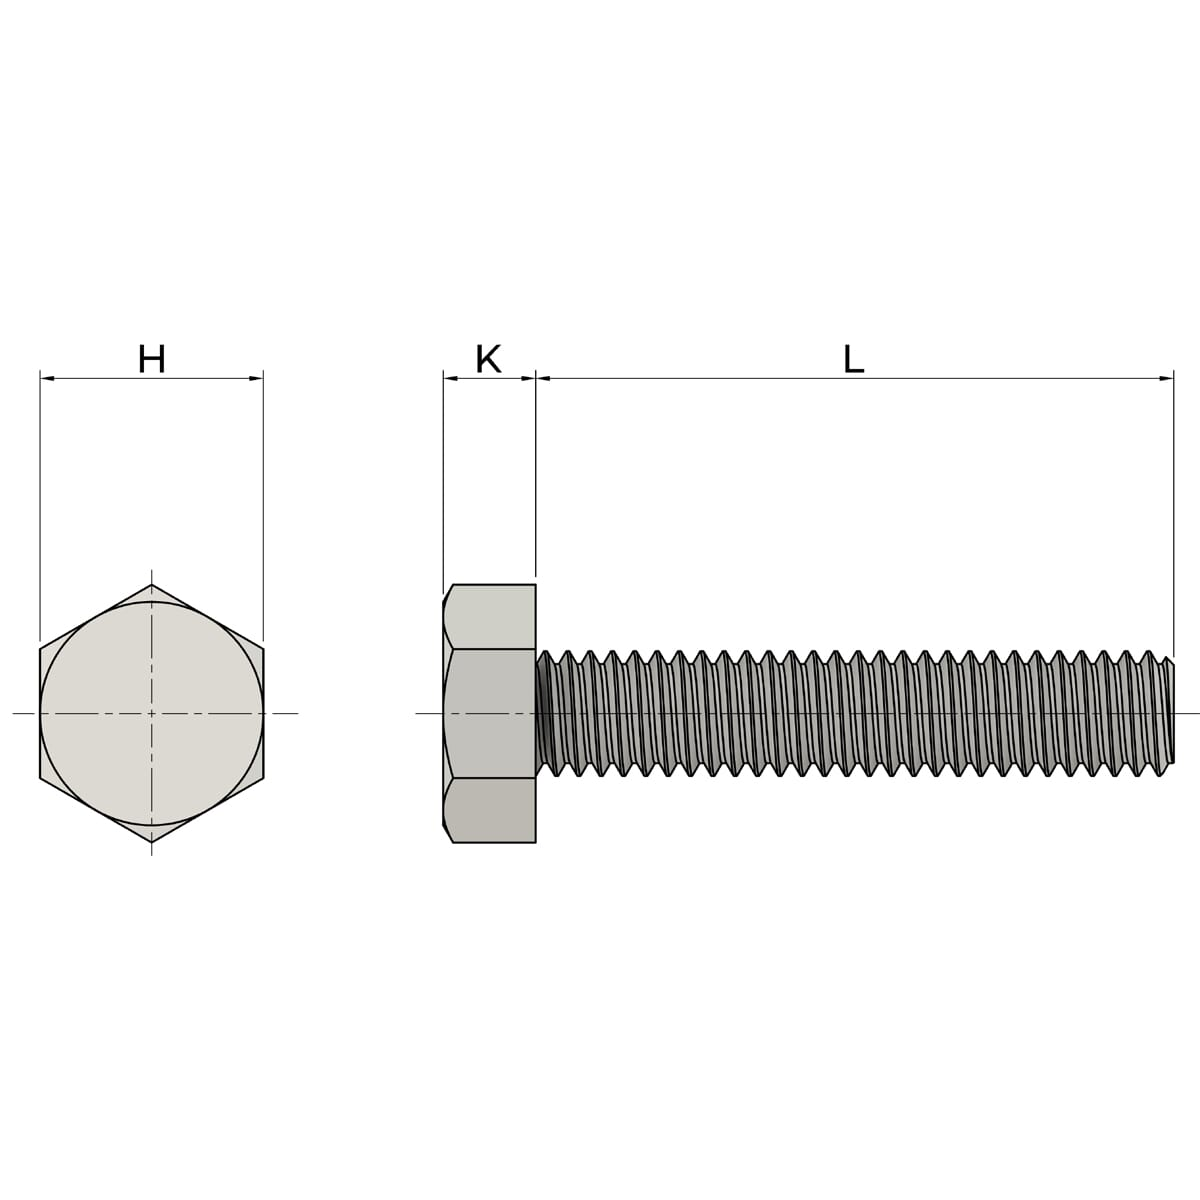 M20 x 180mm Full Thread Hexagon Bolts (DIN 933) - High Tensile Stainless Steel (A4-80) Drawing